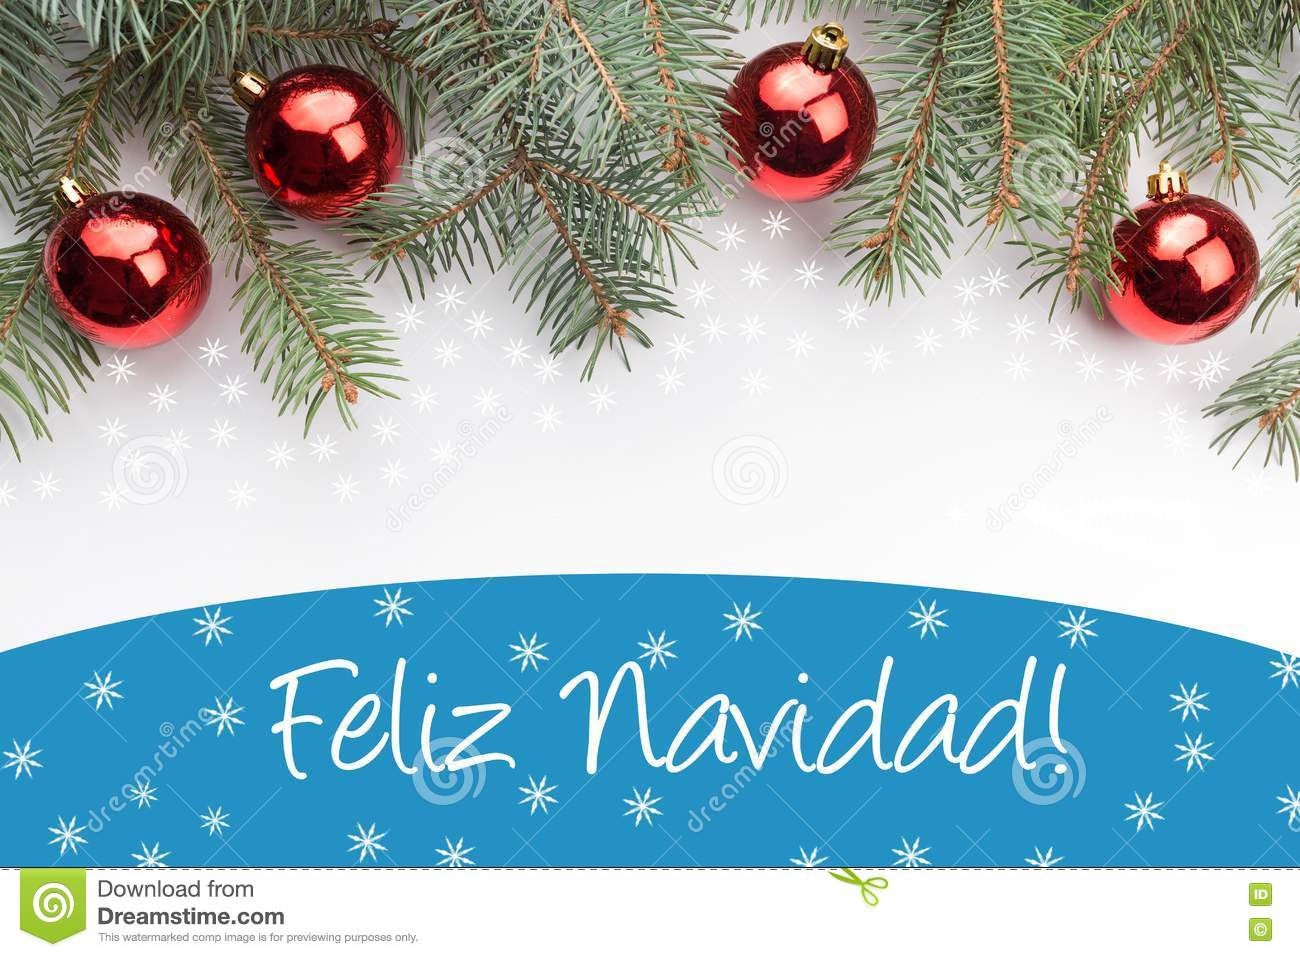 christmas decorations with the greeting feliz navidad in spanish - Spanish Christmas Decorations